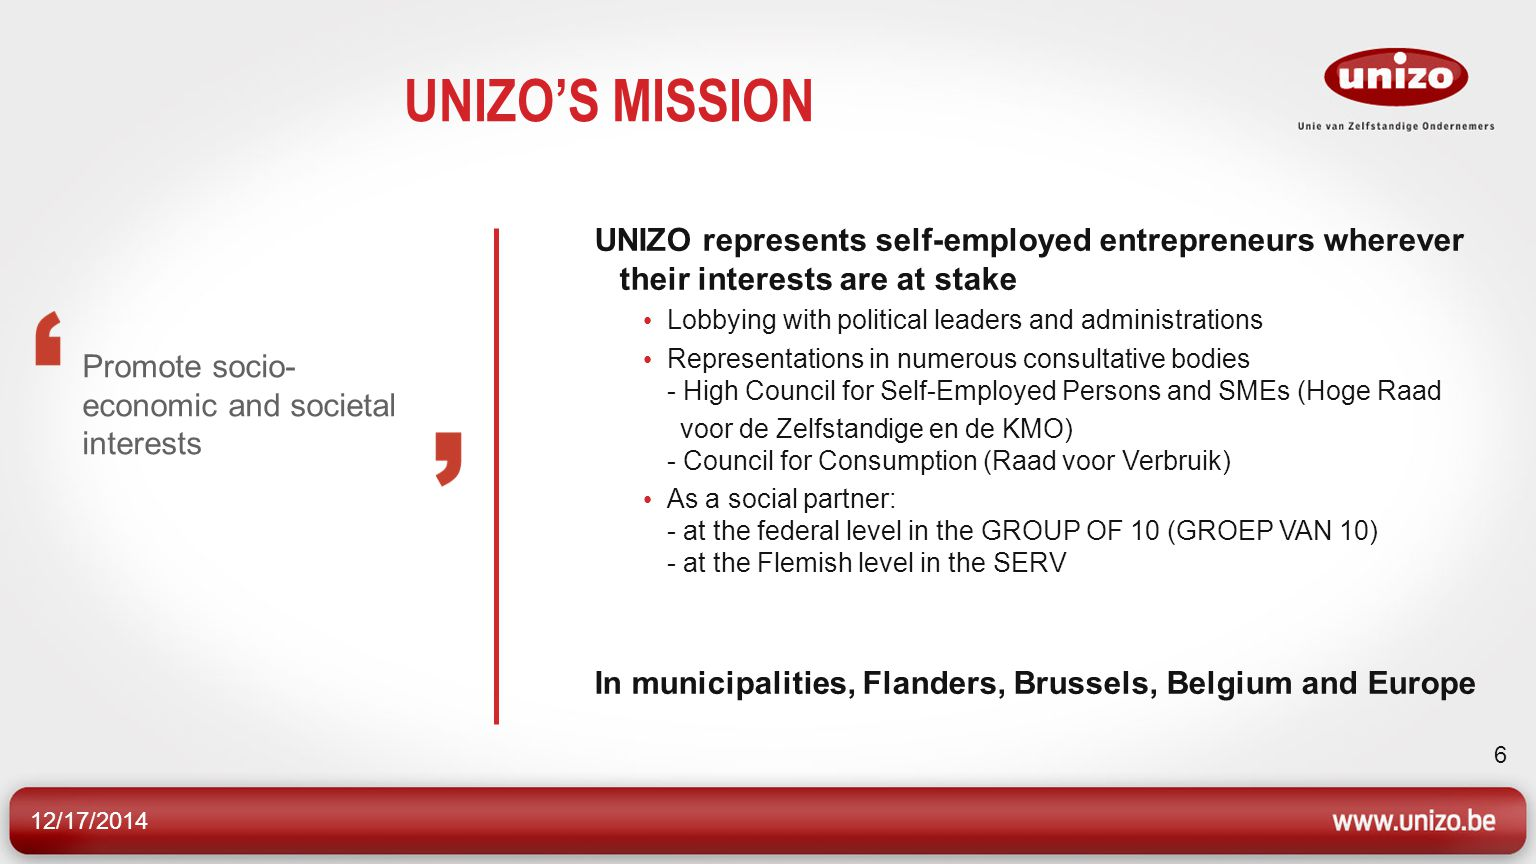 12/17/2014 6 UNIZO'S MISSION Promote socio- economic and societal interests UNIZO represents self-employed entrepreneurs wherever their interests are at stake Lobbying with political leaders and administrations Representations in numerous consultative bodies - High Council for Self-Employed Persons and SMEs (Hoge Raad voor de Zelfstandige en de KMO) - Council for Consumption (Raad voor Verbruik) As a social partner: - at the federal level in the GROUP OF 10 (GROEP VAN 10) - at the Flemish level in the SERV In municipalities, Flanders, Brussels, Belgium and Europe